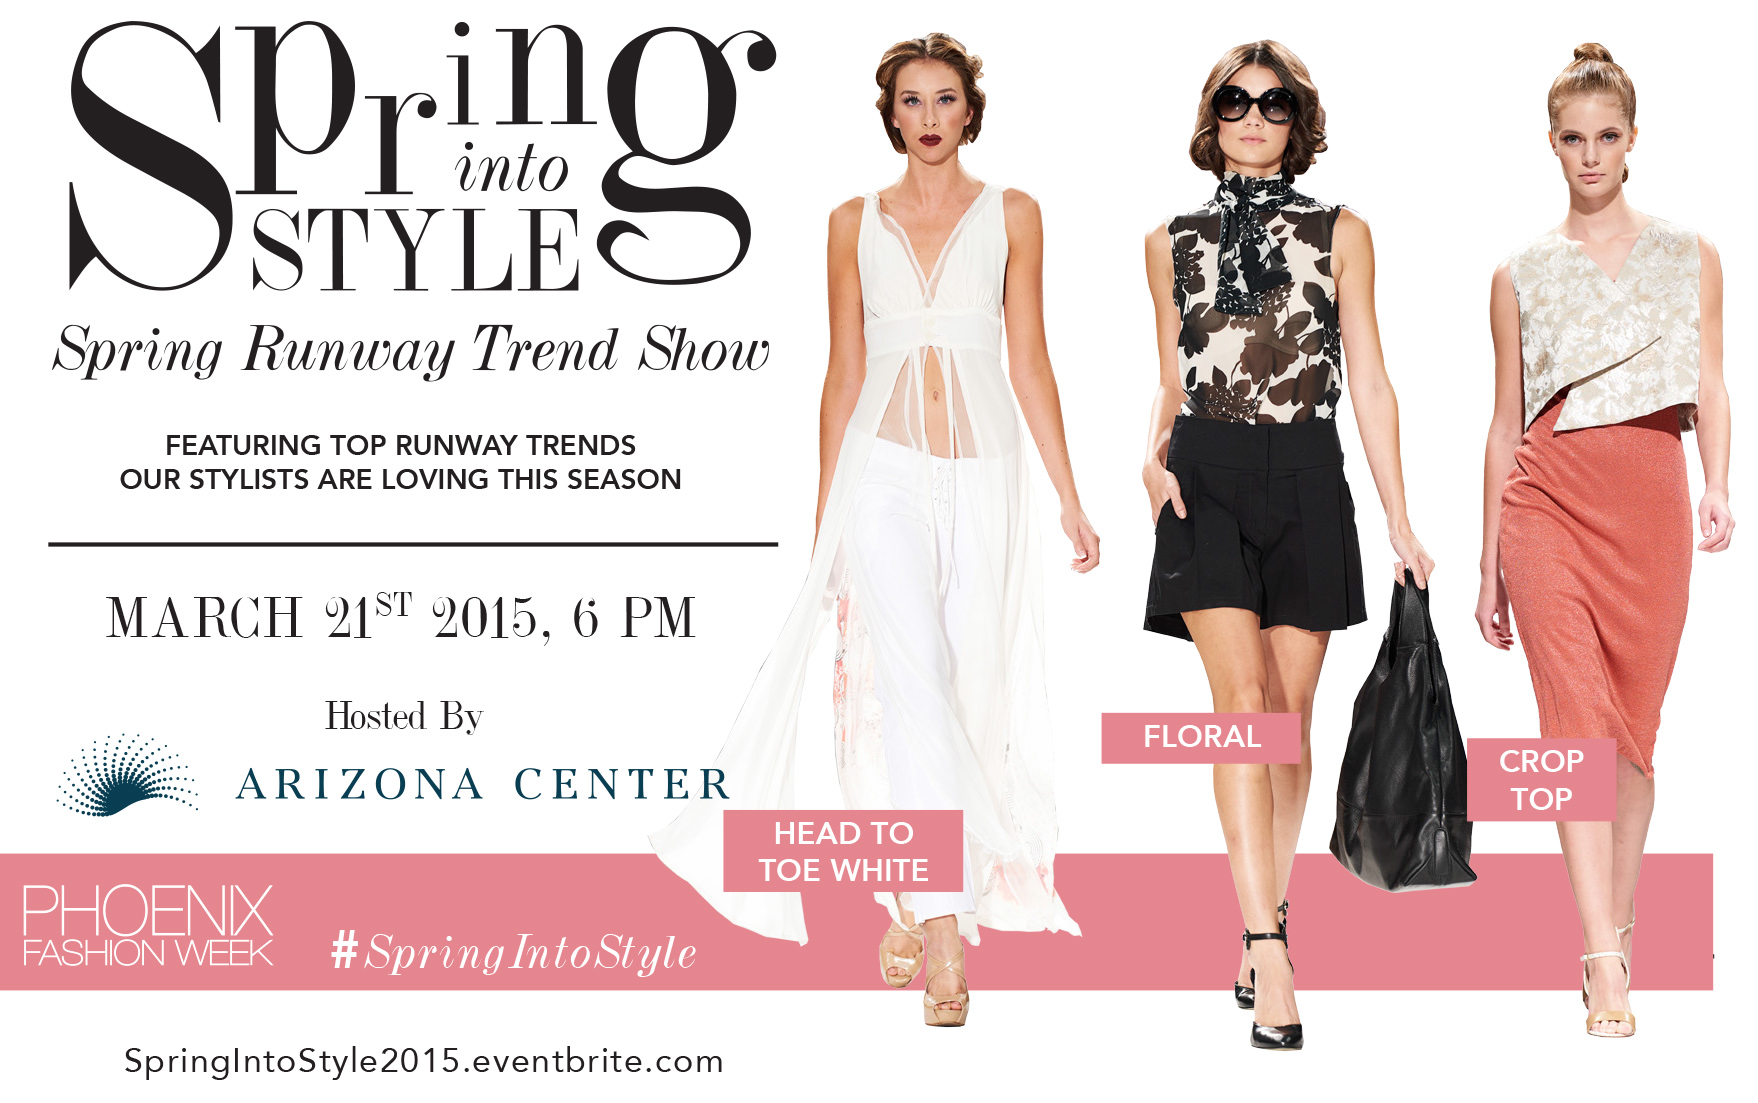 Phoenix fashion week spring into Camp Pendelton Surf Forecast and Surf Reports (CAL - San)